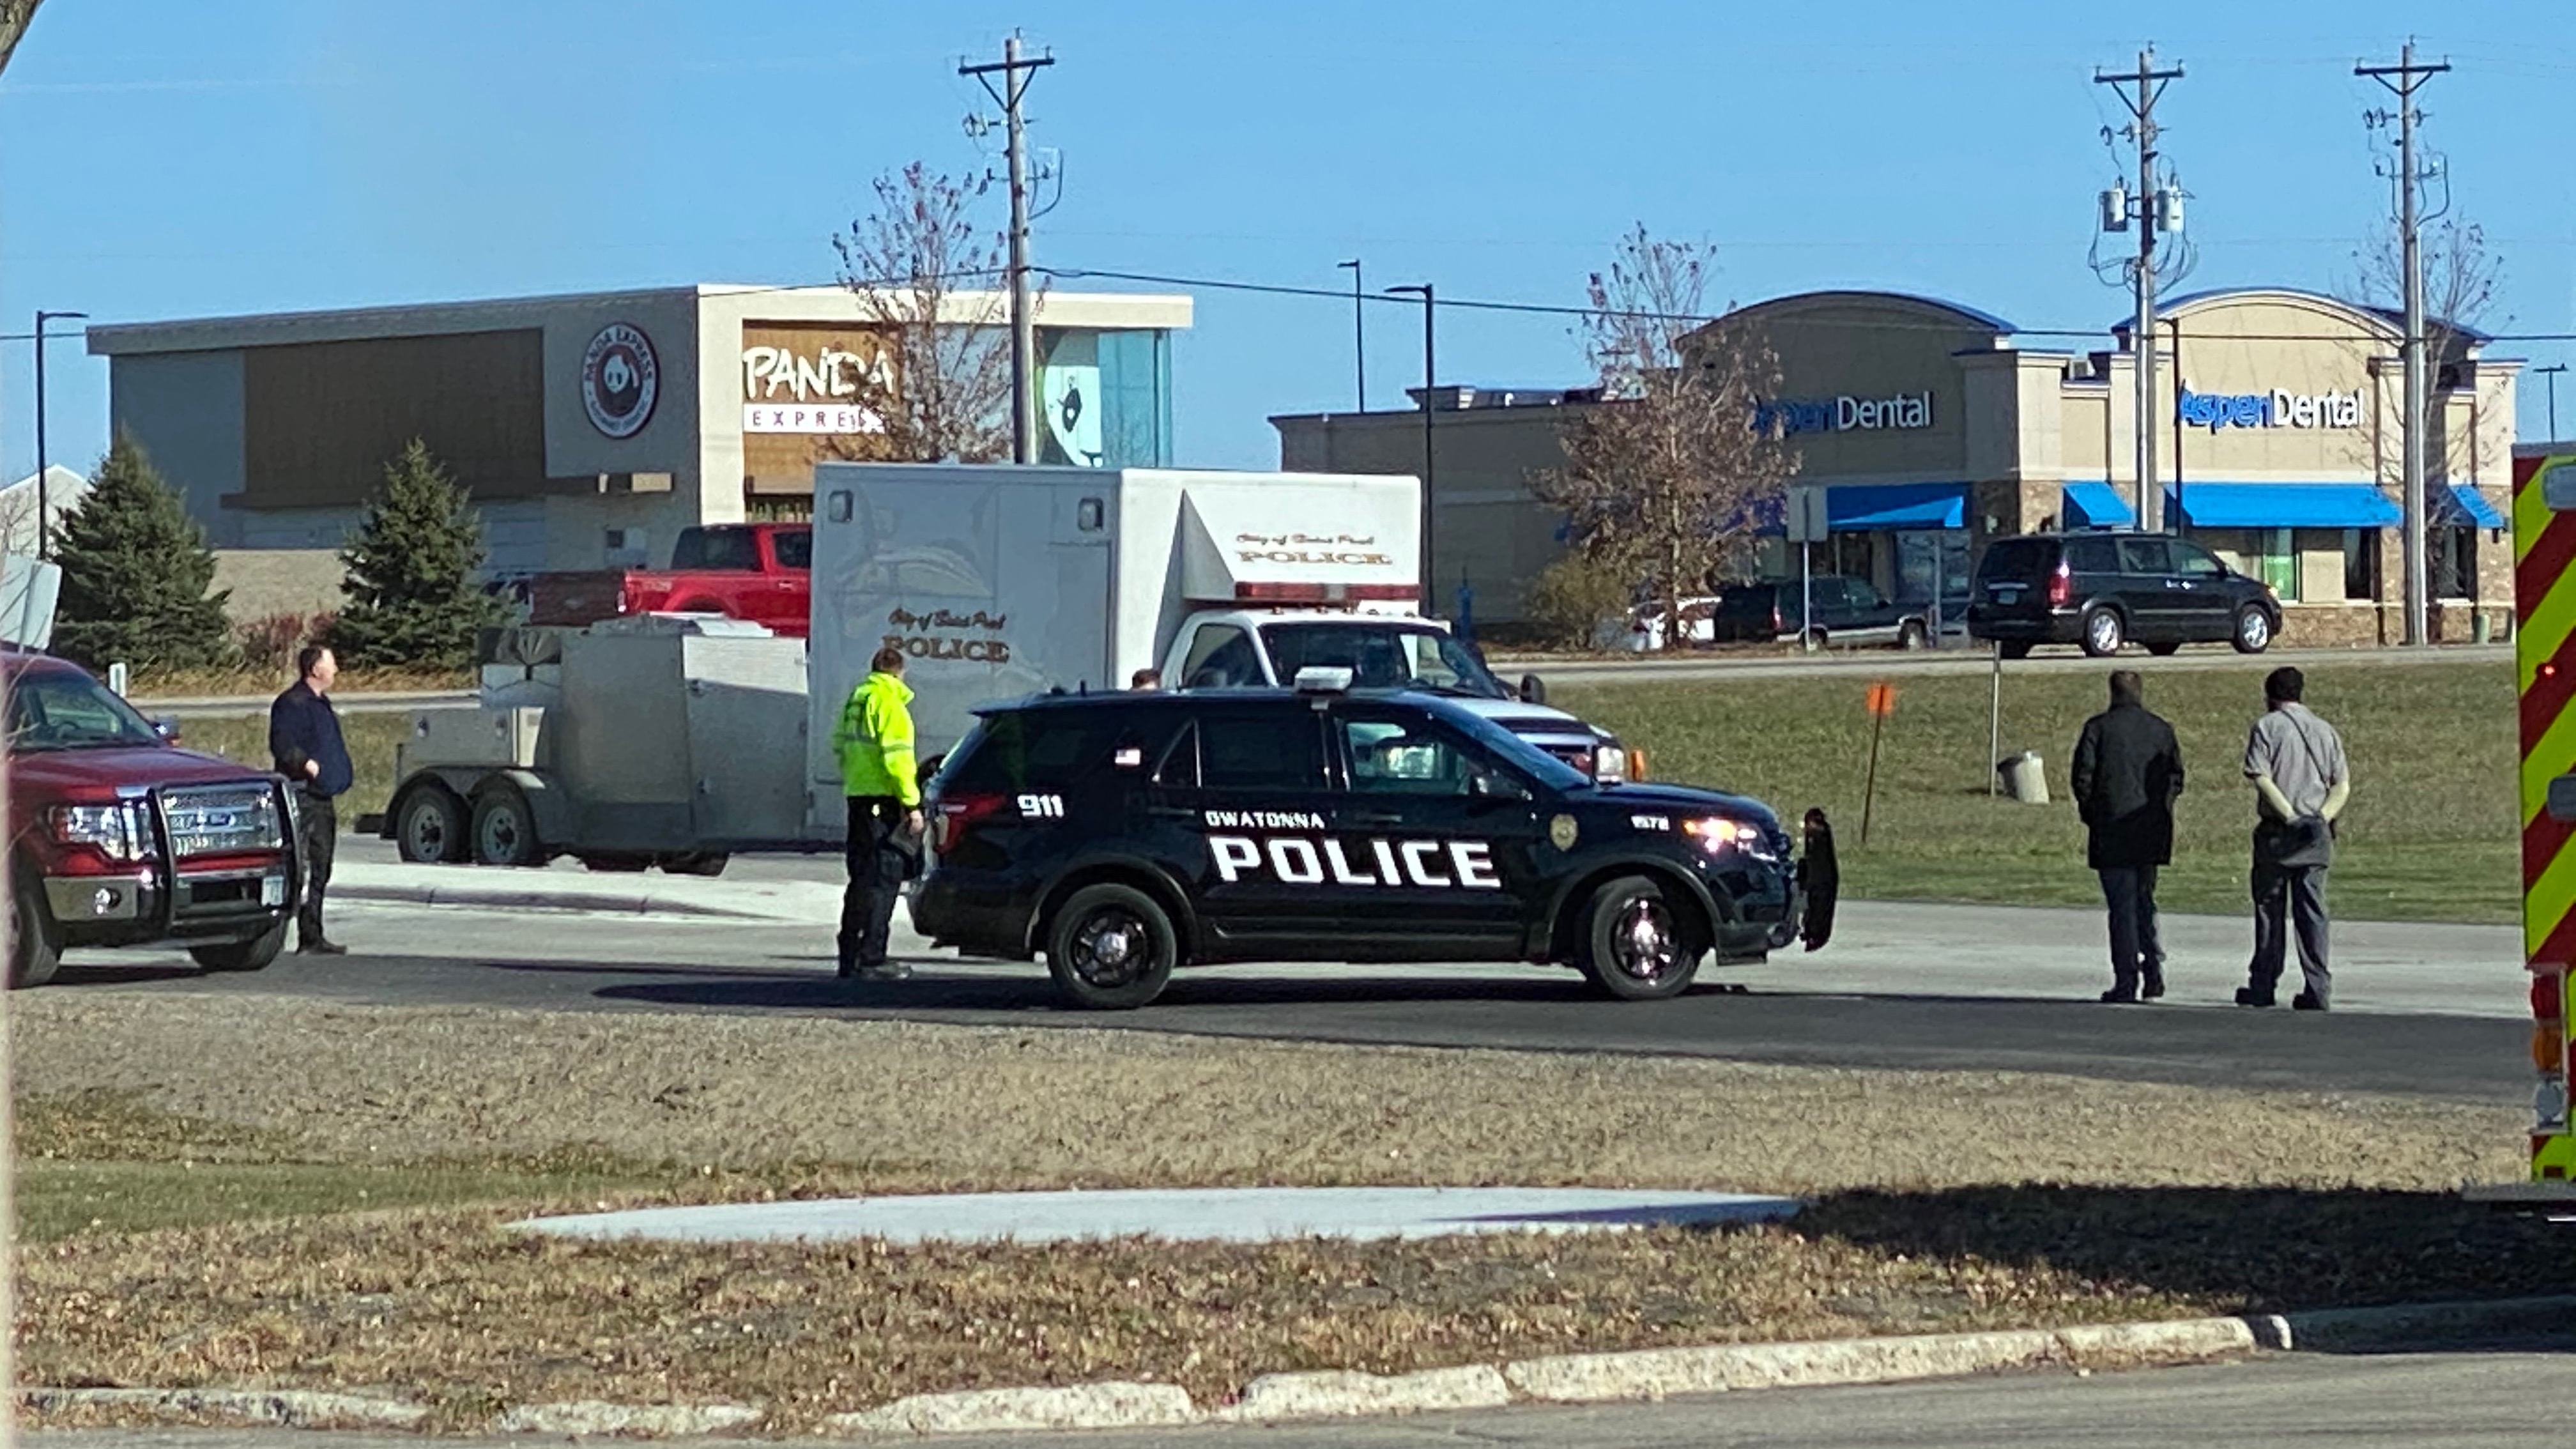 Police vehicles block an intersection near the Owatonna truck statuon, as officers stand by